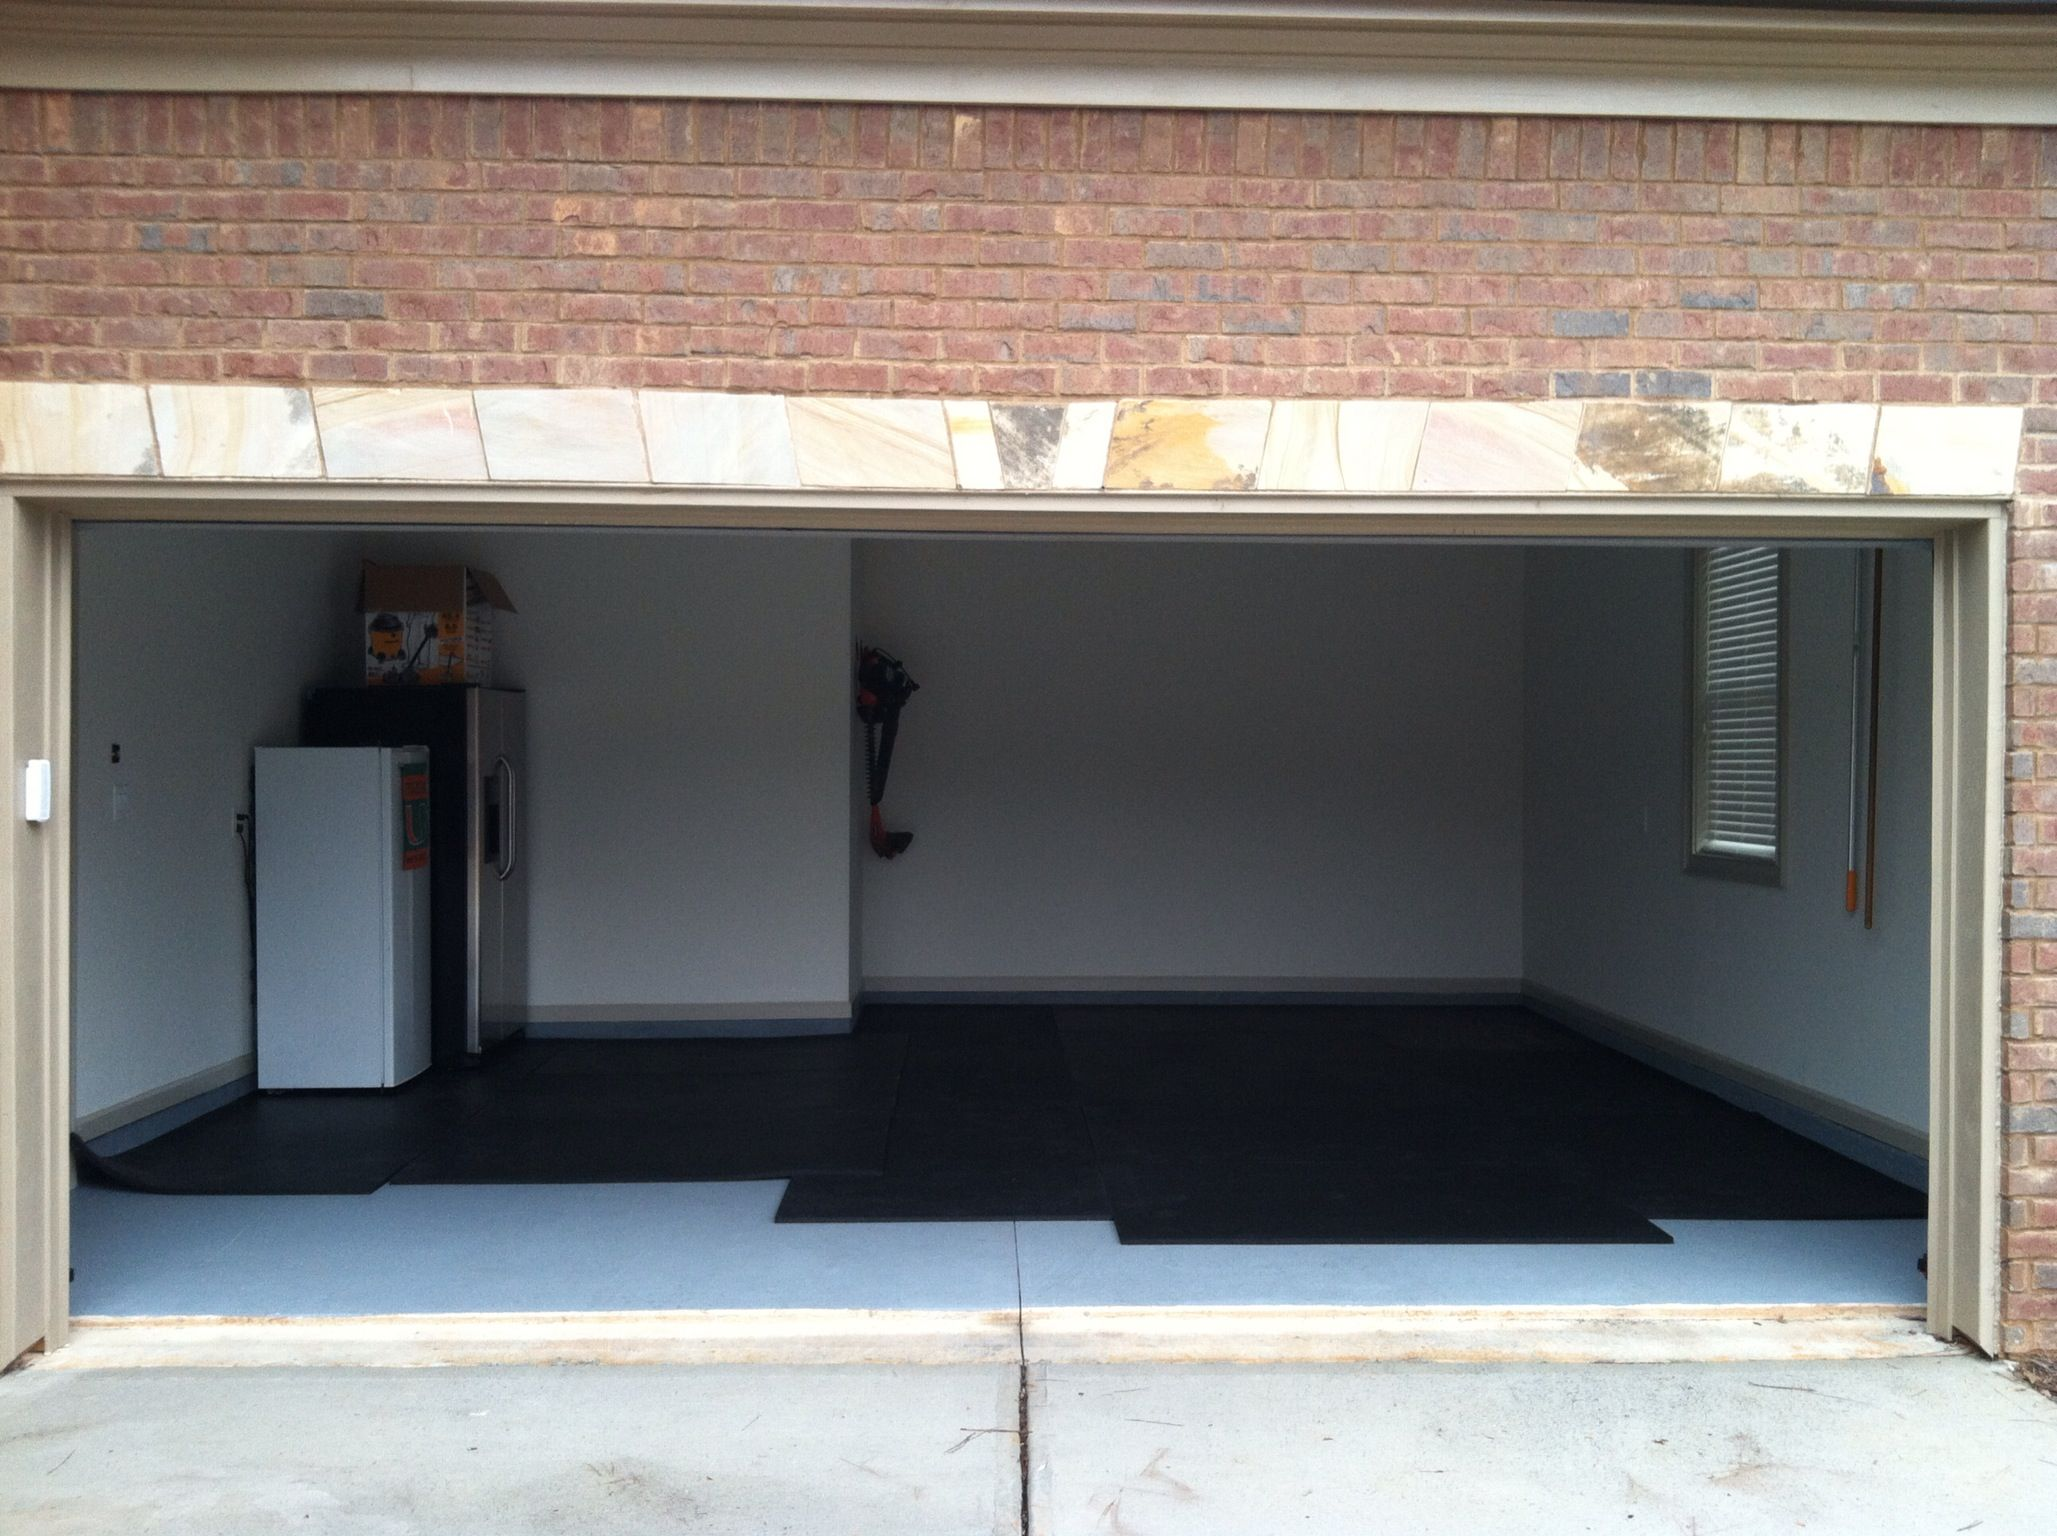 Step 1 1 Inch Rubber Mats To Floor 400 Square Foot 2 Car Garage W 11 Foot Ceilings And Ceiling Flush Garage Door We Ne Garage Doors Rubber Mat Crossfit Box